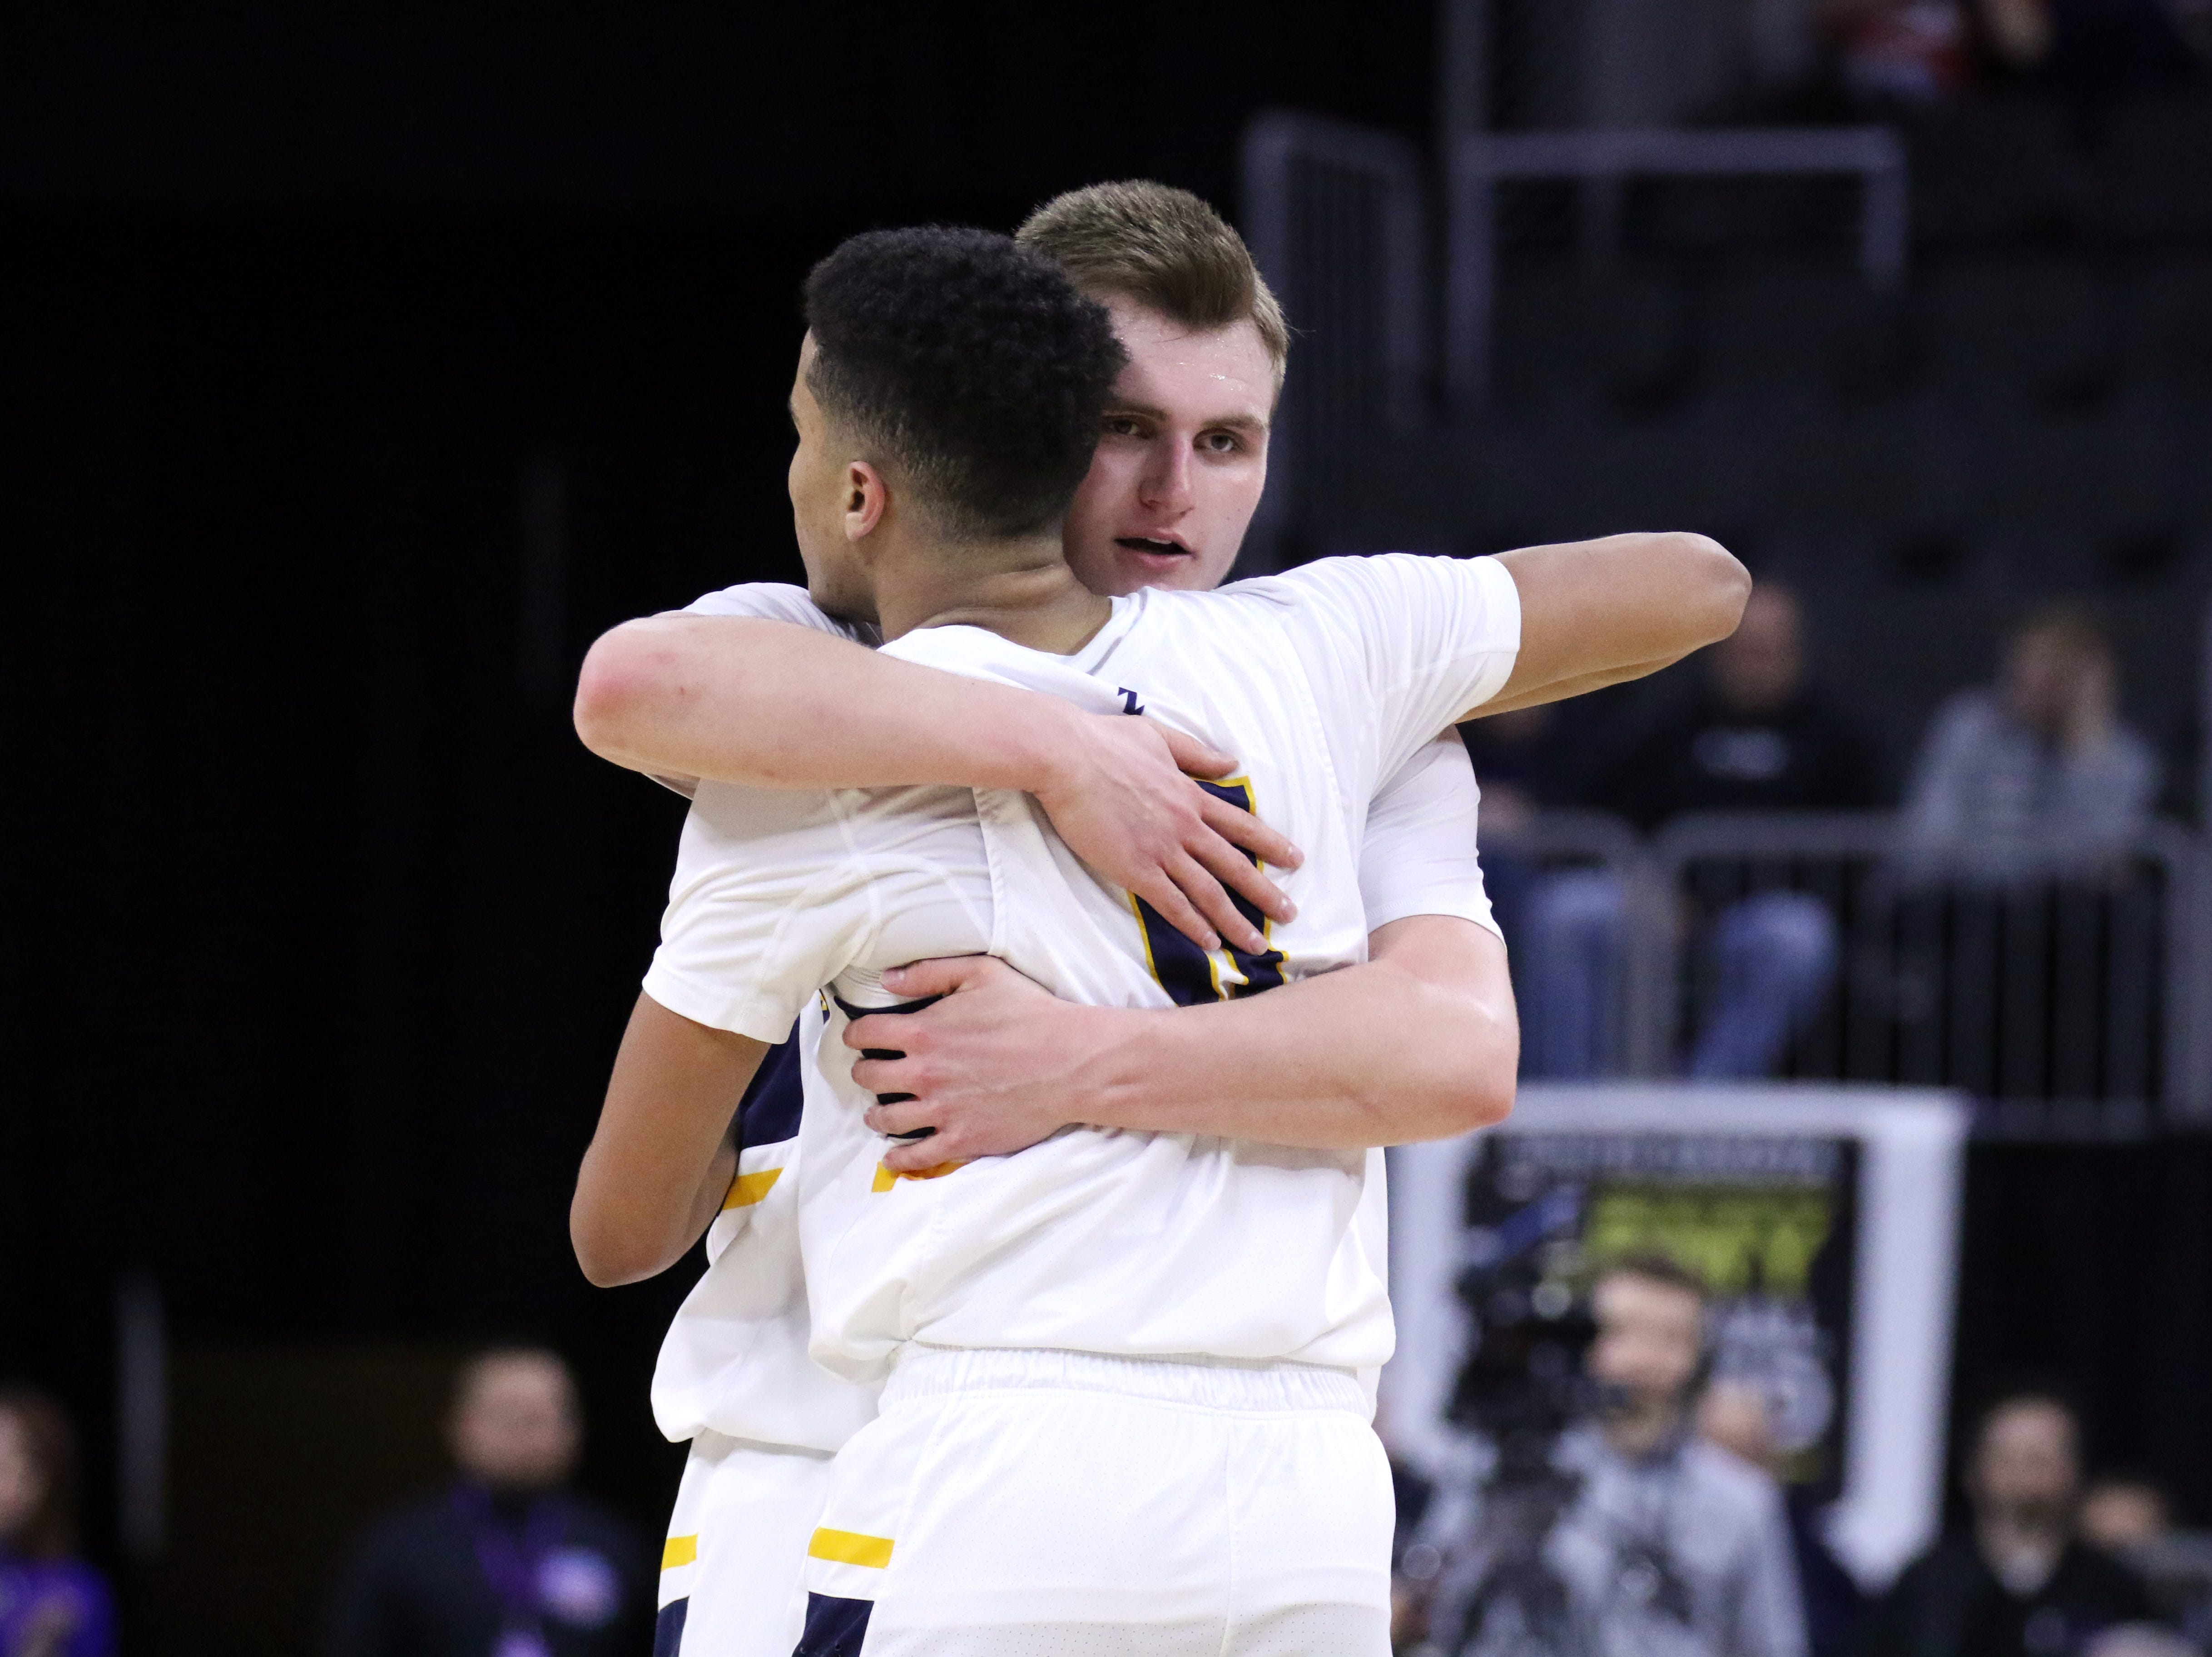 Kaleb Joffer and Justin Hohn of Tea congratulate each other after defeating Sioux Falls Christian for the Class A title on Saturday night at the Premier Center.